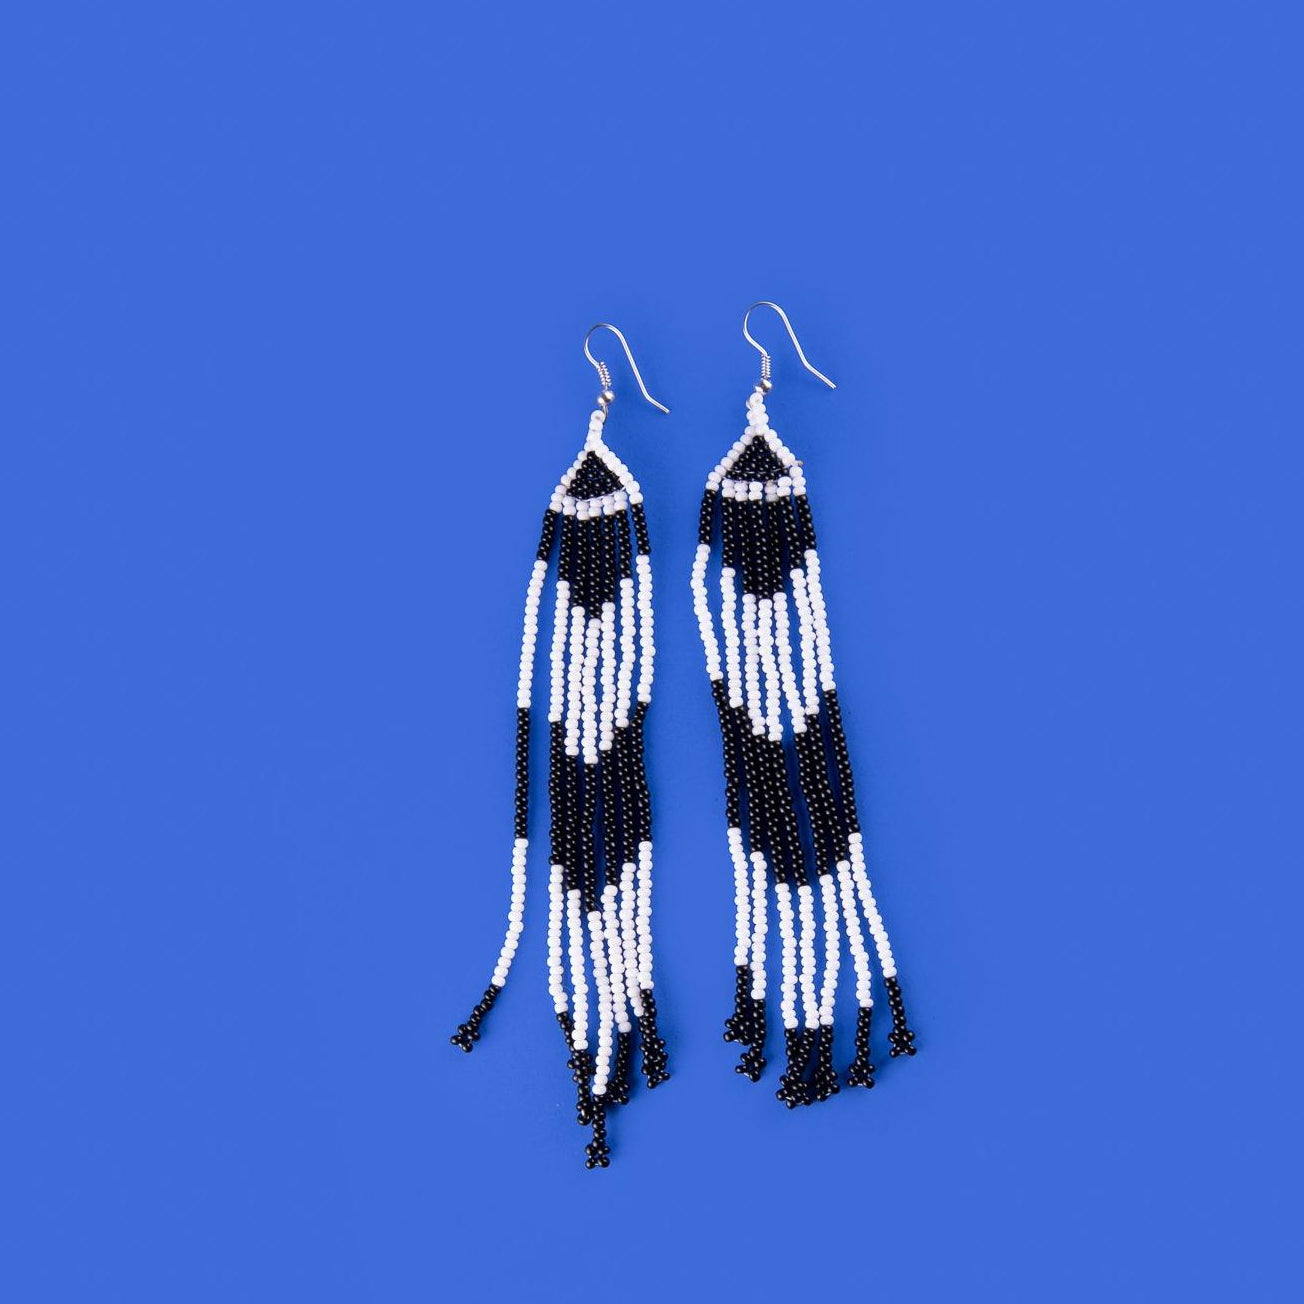 B&W long earrings